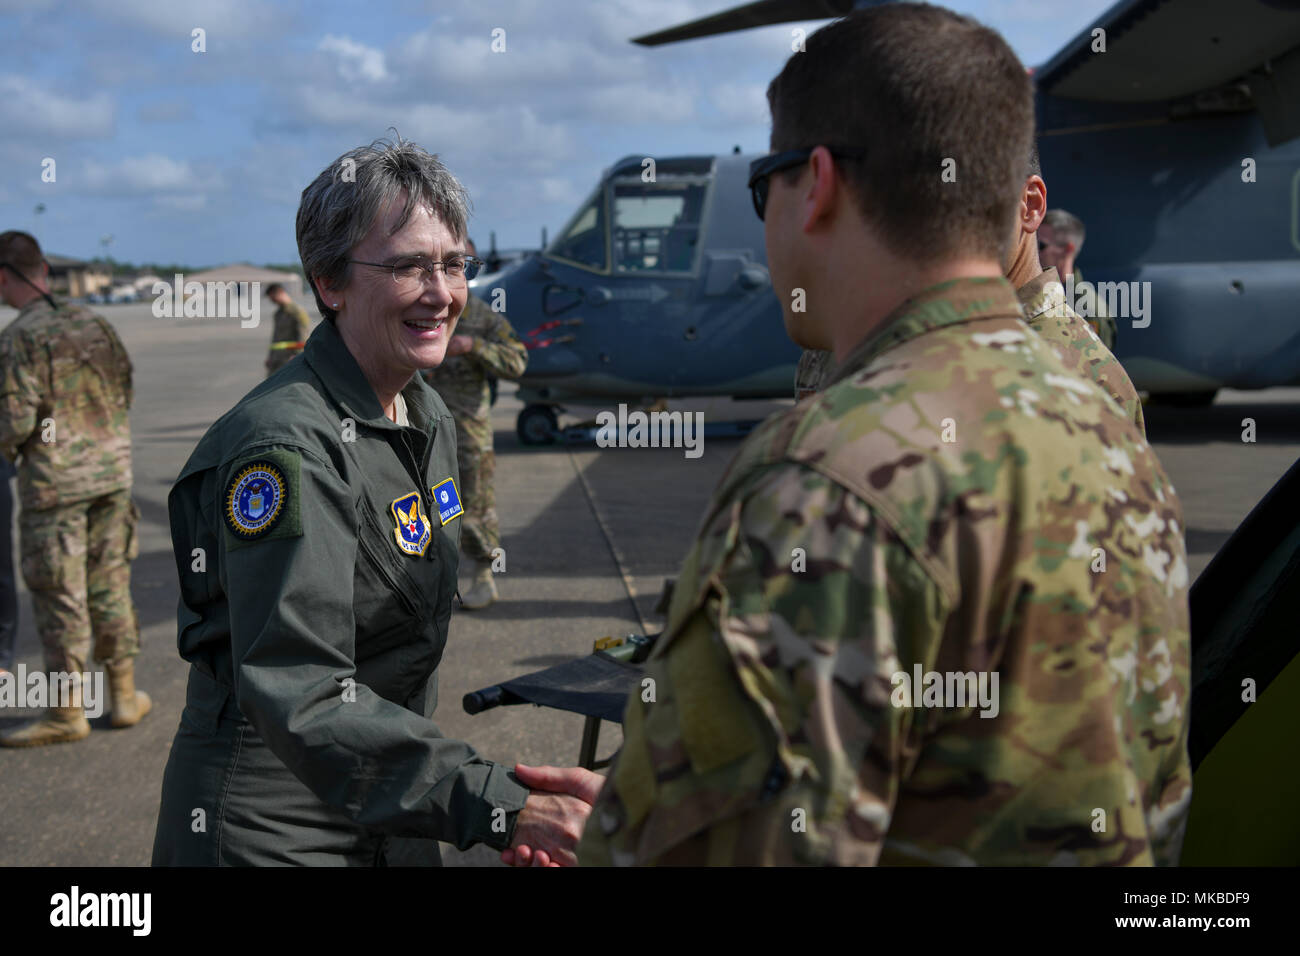 Secretary of the Air Force Heather Wilson greets members of a Special Operations Surgical Team at Hurlburt Field, Florida, May 3, 2018. A SOST is a mobile surgical team with advanced medical and tactics training that can deploy to austere or hostile areas to provide surgical support, often operating far-forward near the frontlines of conflict. (U.S. Air Force photo by Staff Sgt. Victor J. Caputo) - Stock Image